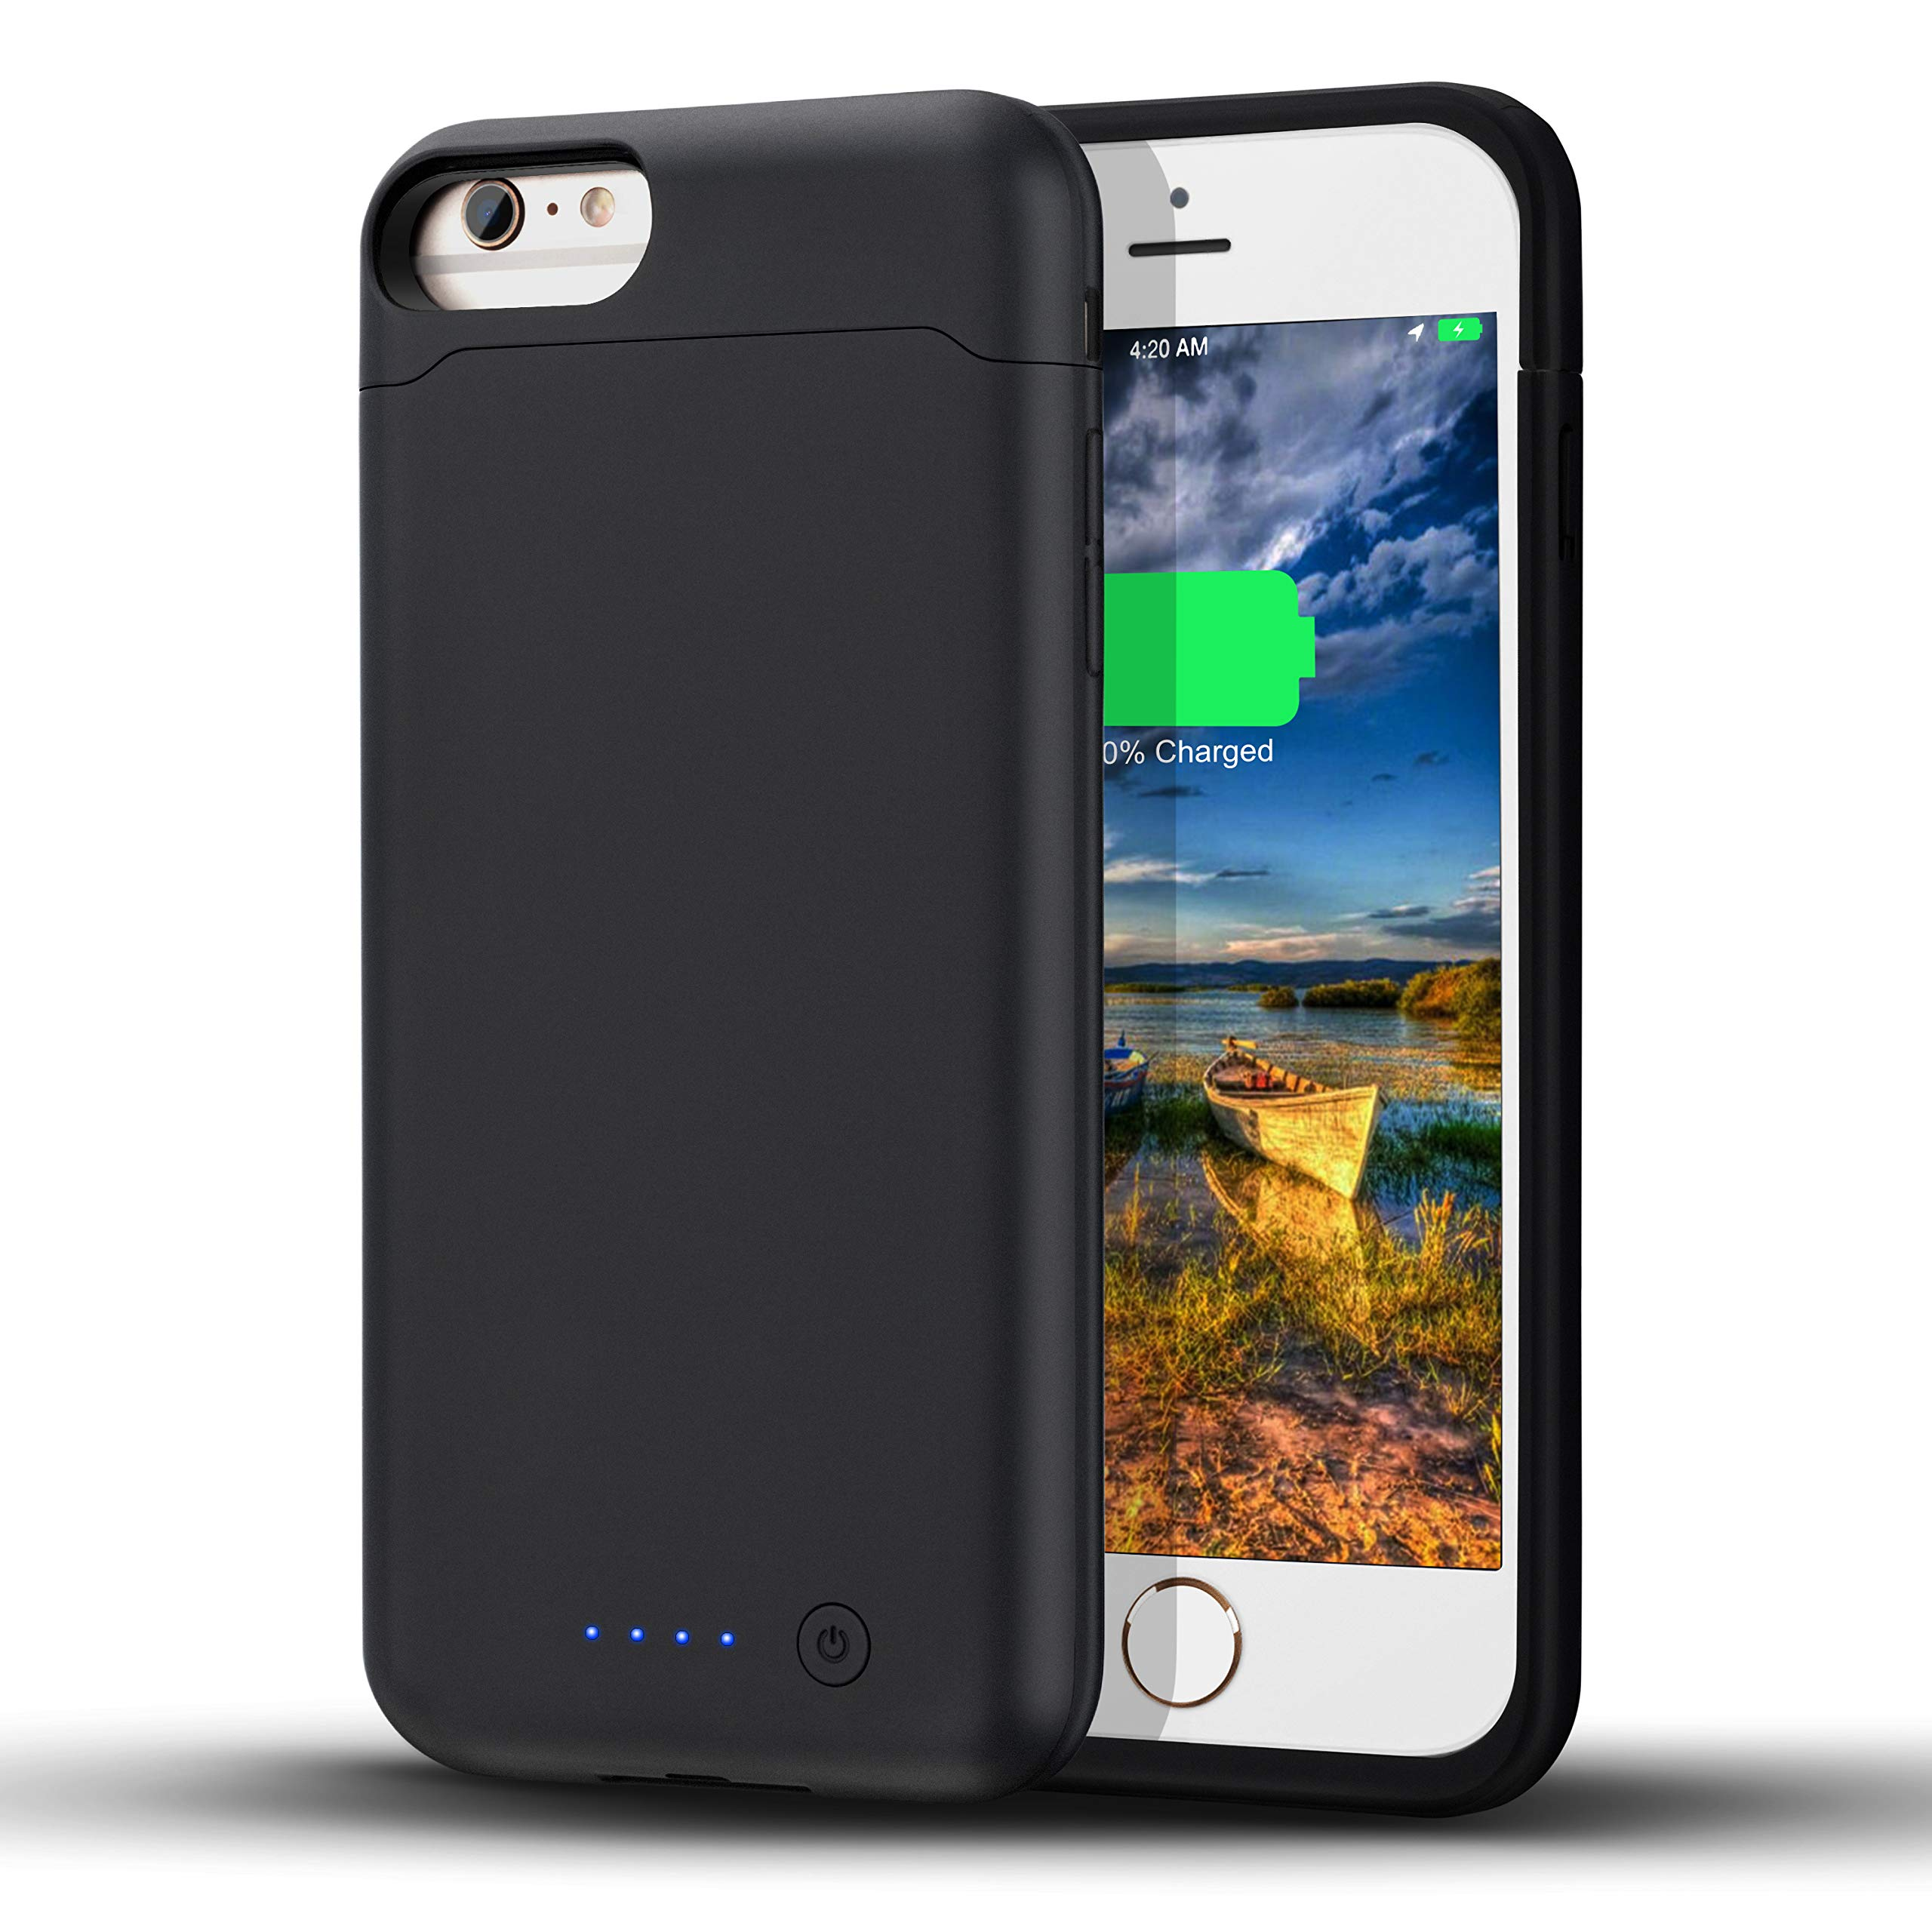 LCLEBM Battery Case for iPhone 6 Plus/ 6s Plus (5.5 inch), 8500mAh High Capacity Extended Battery Charger Case, Portable Protective Charging Case Compatible with iPhone 6 Plus/6s Plus - Black by LCLEBM (Image #1)